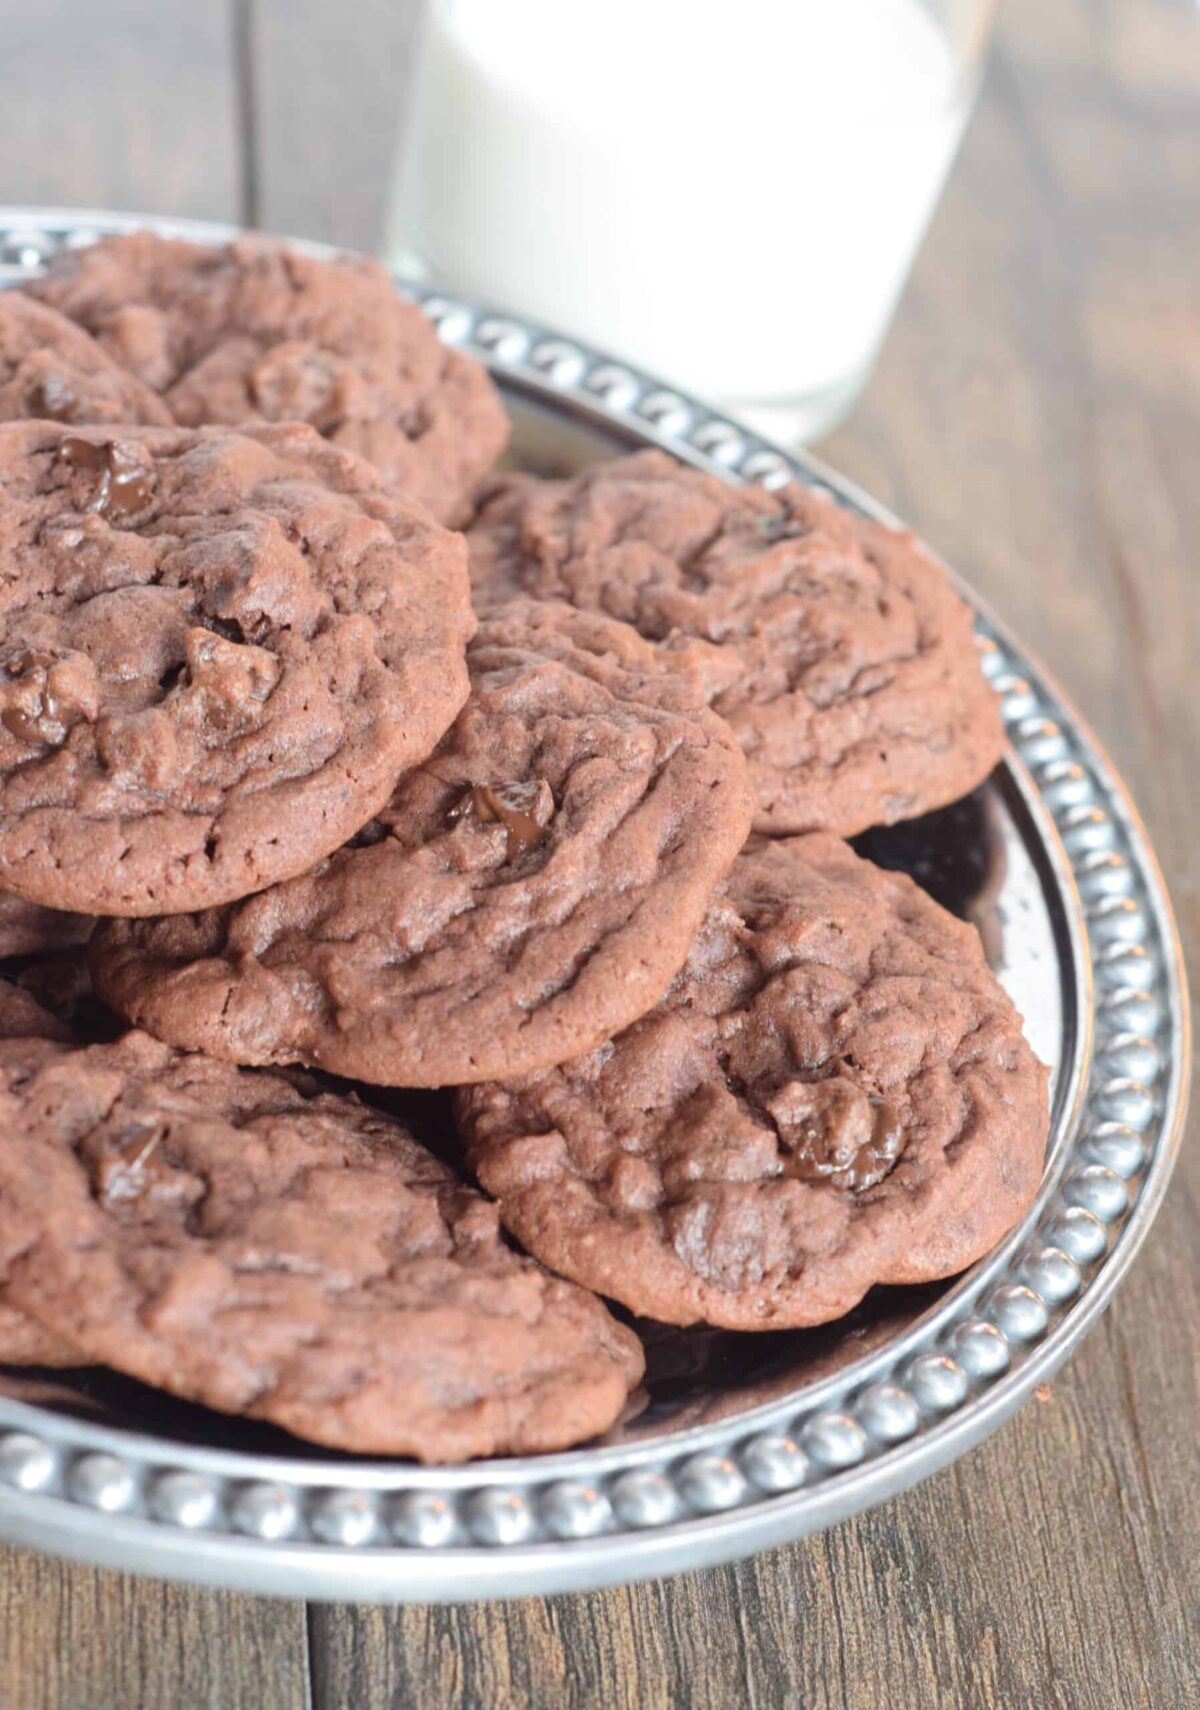 Chocolate cookies with chocolate chips. Plate of them and glass of milk